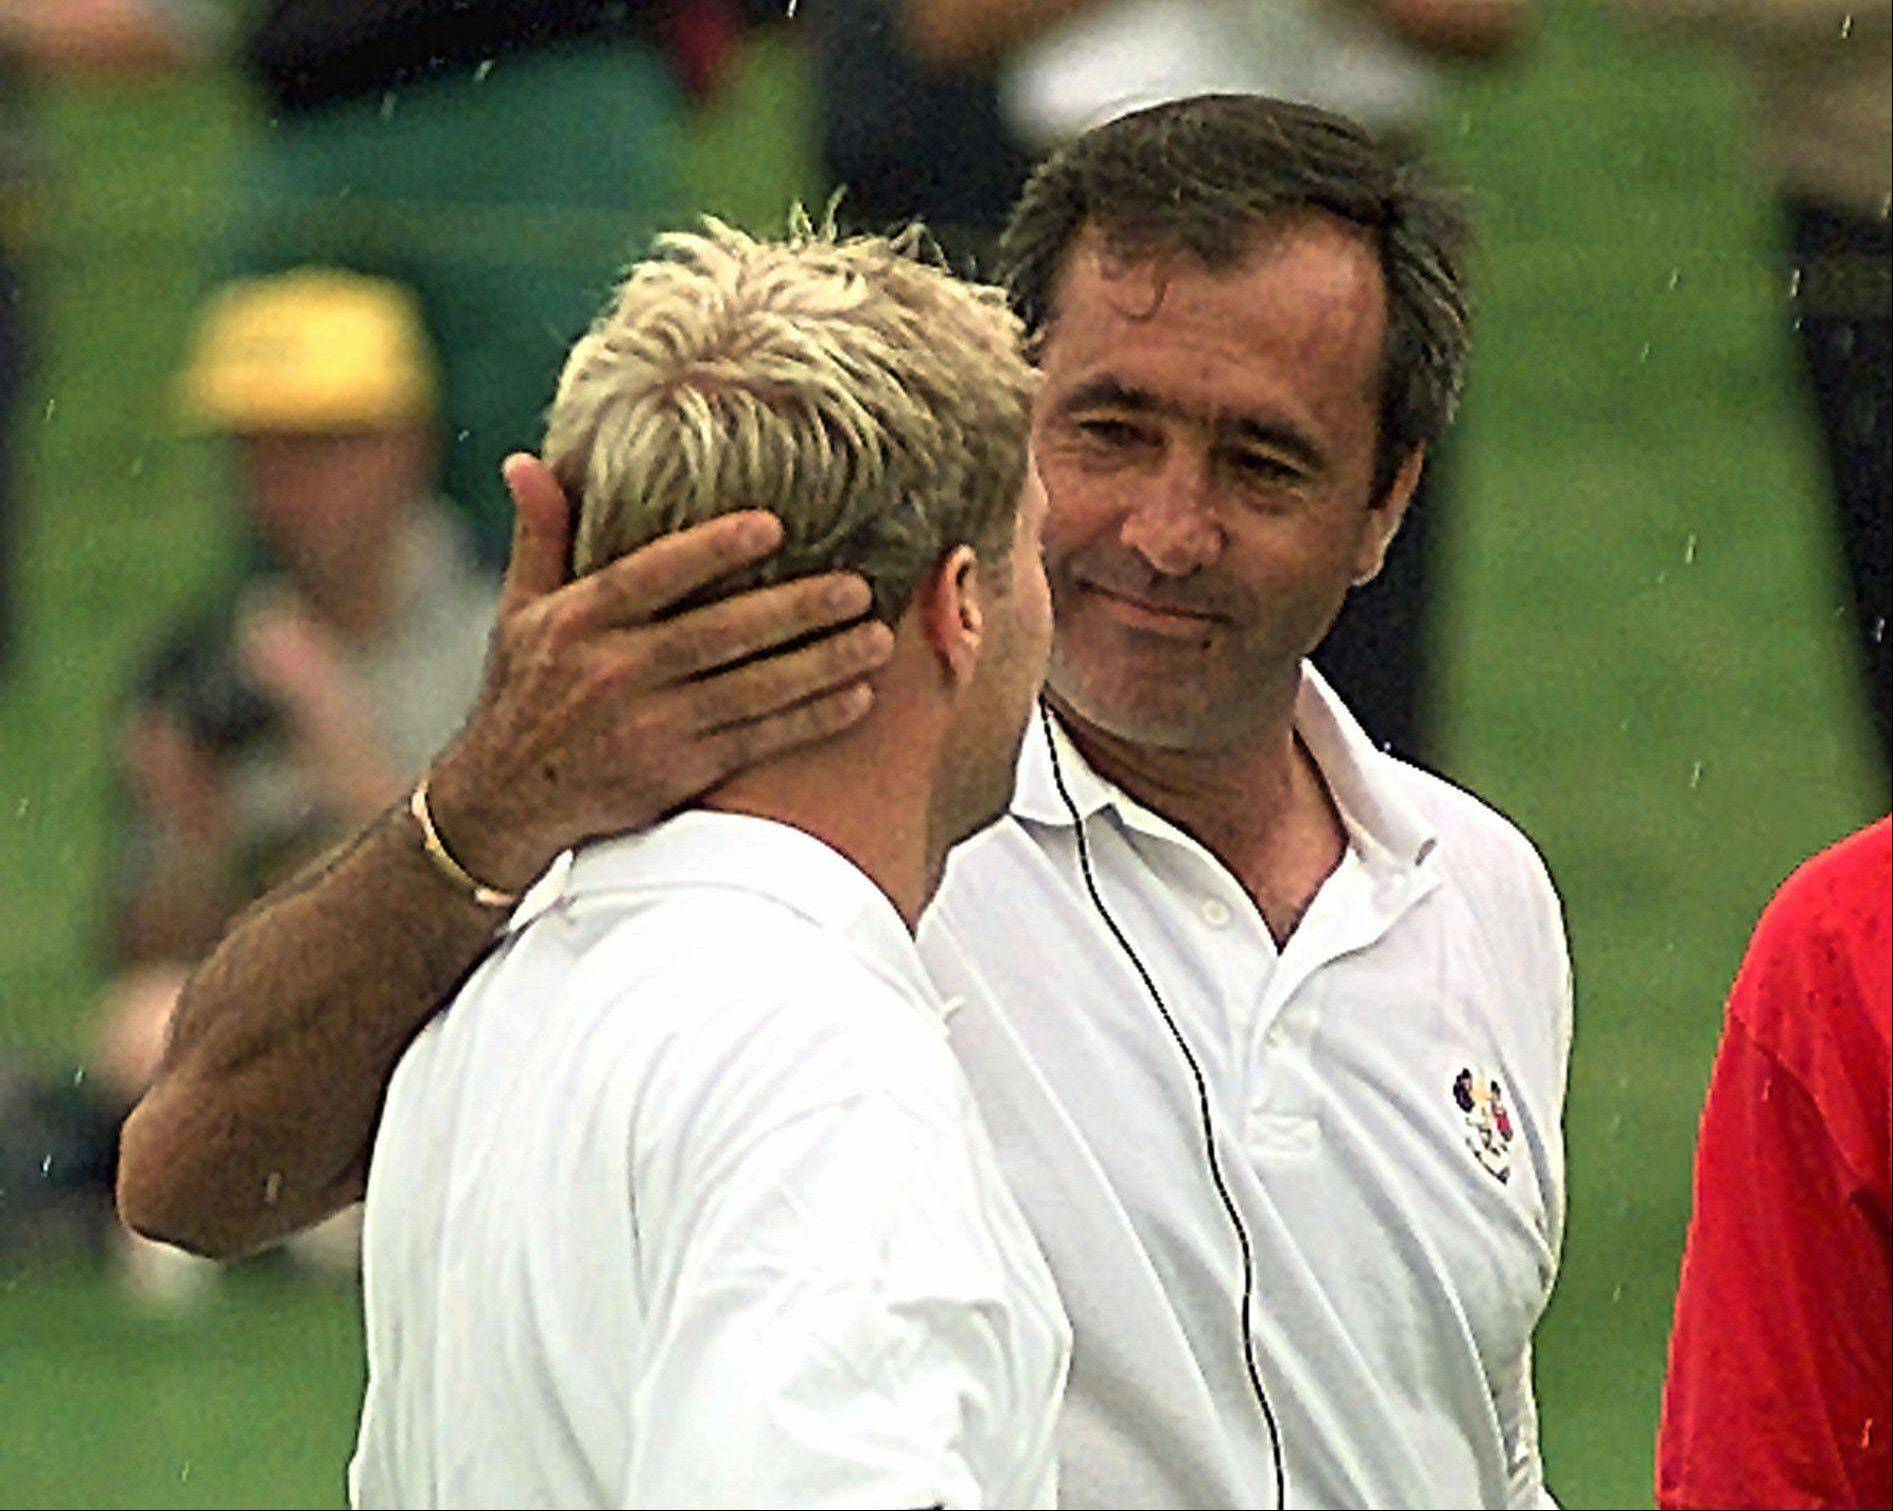 "European Ryder Cup team captain Severiano Ballesteros of Spain, right, congratulates Per-Ulrik Johansson of Sweden after he defeated Davis Love III of the United States team by 3 and 2 during their singles match on the final day of the Ryder Cup at Valderrama golf course, southern Spain Sunday Sept. 28, 1997. The 1997 Cup is considered by many to be ""Seve's Ryder Cup"" on account of his impressive play."